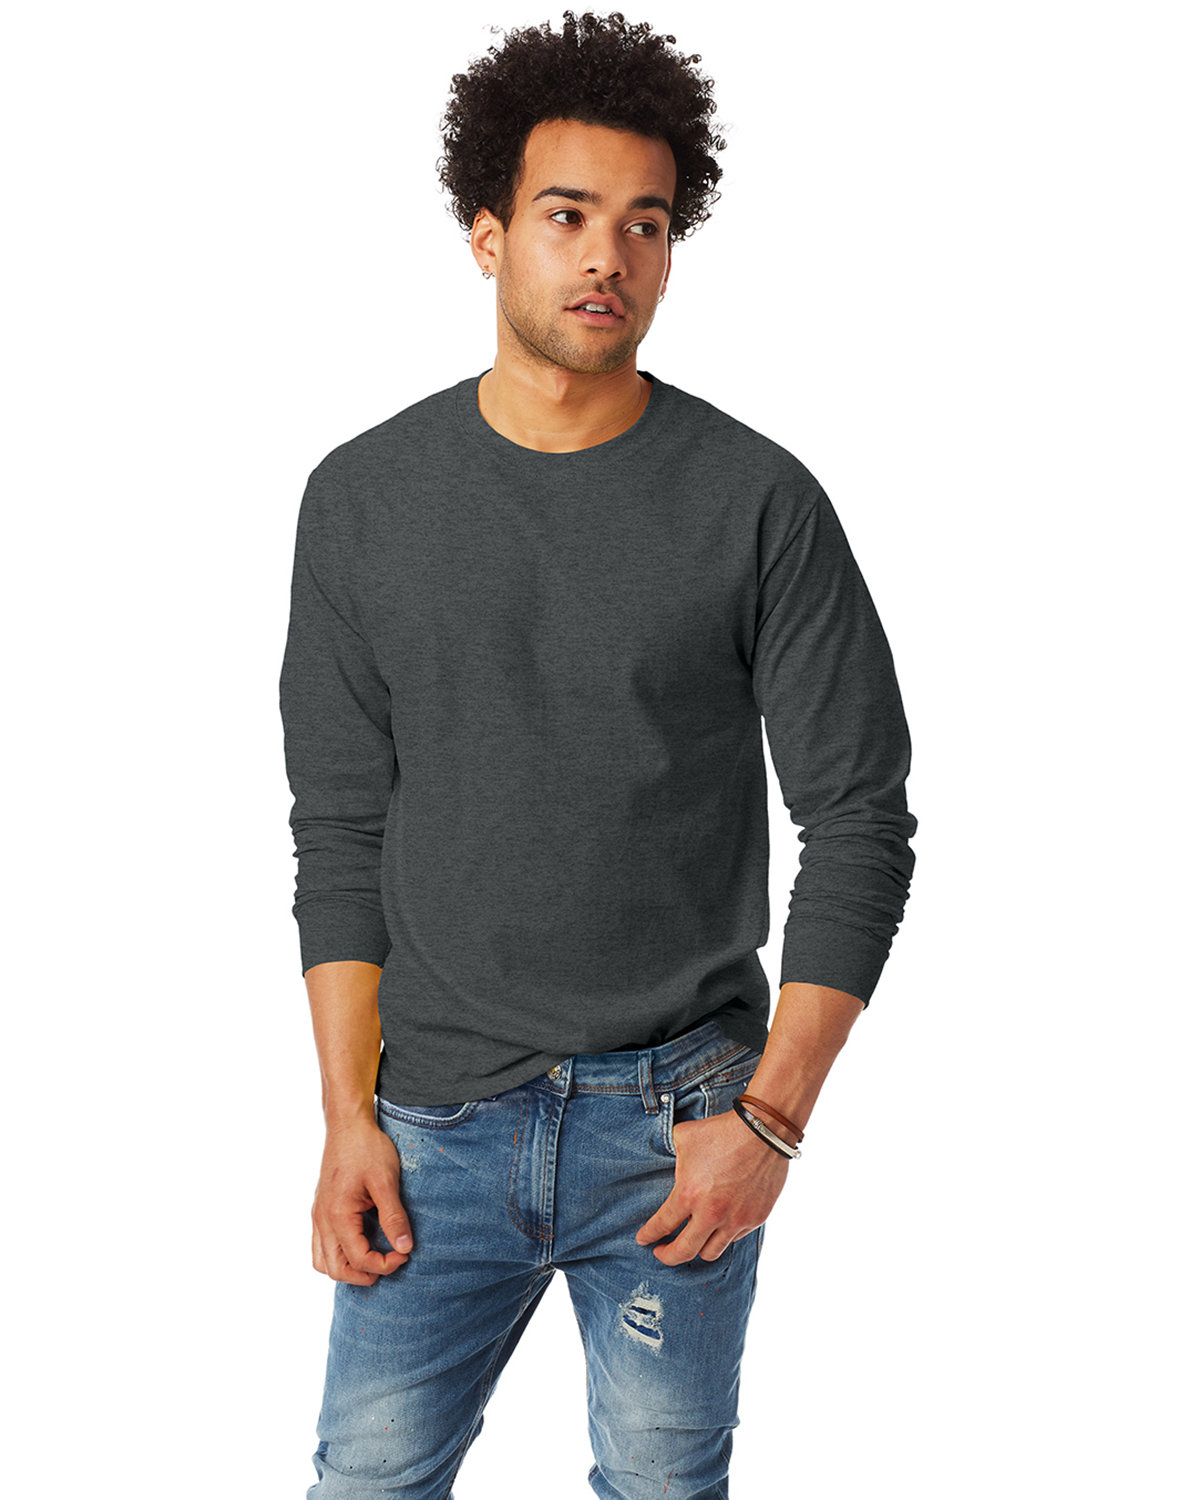 Hanes Adult Authentic-T Long-Sleeve T-Shirt CHARCOAL HEATHER